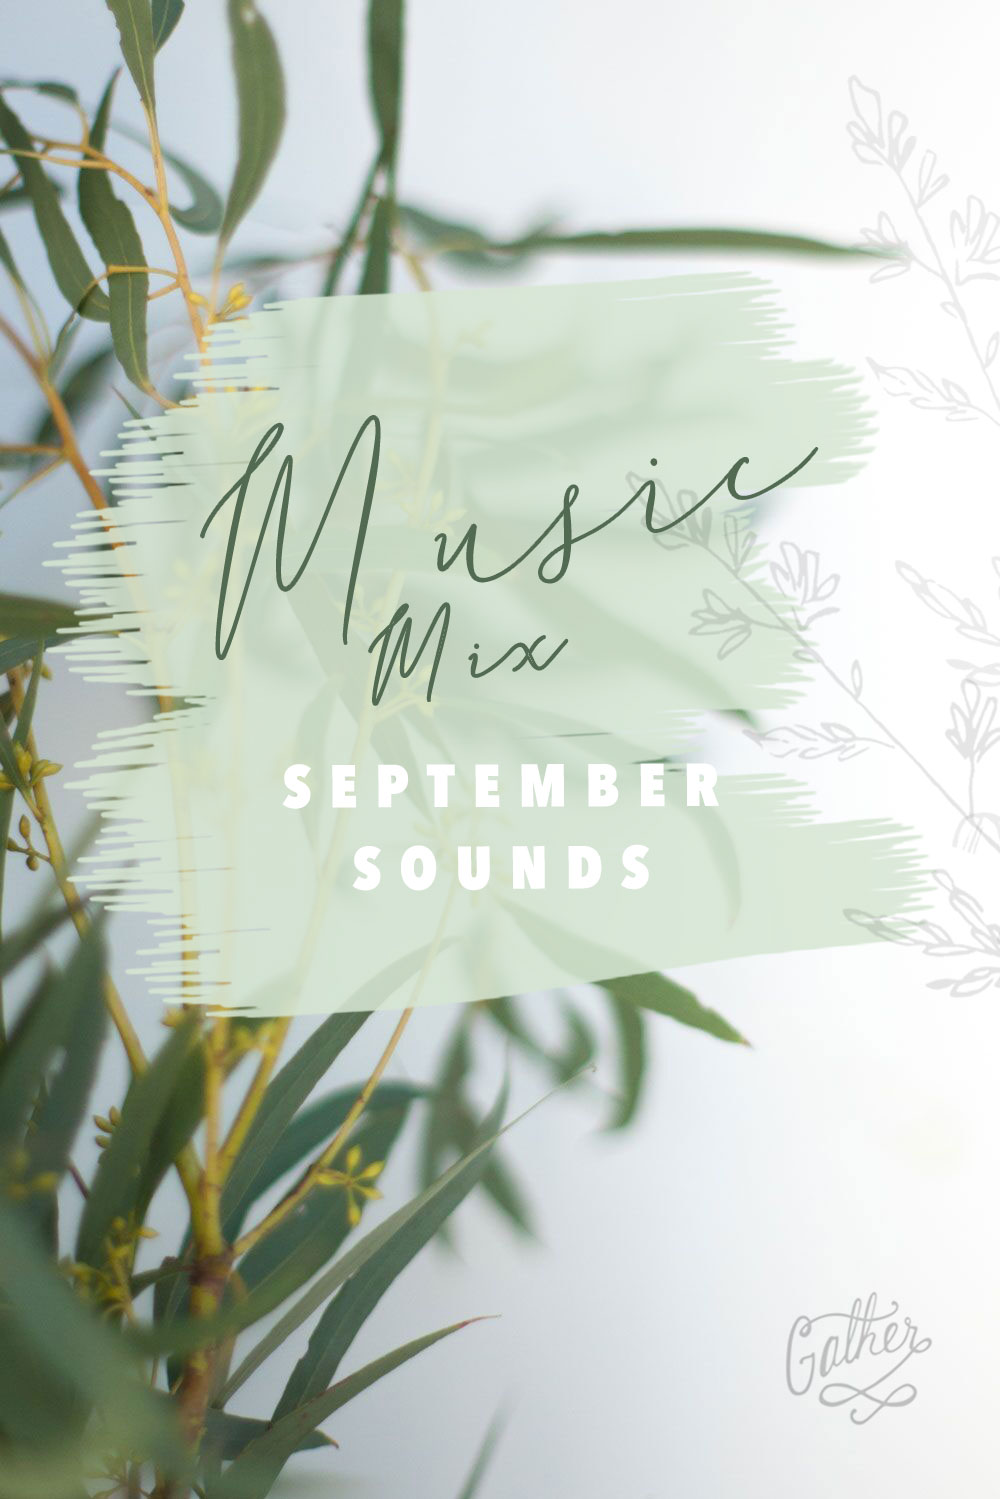 September Sounds, A Music Mix | Gather Goods Co